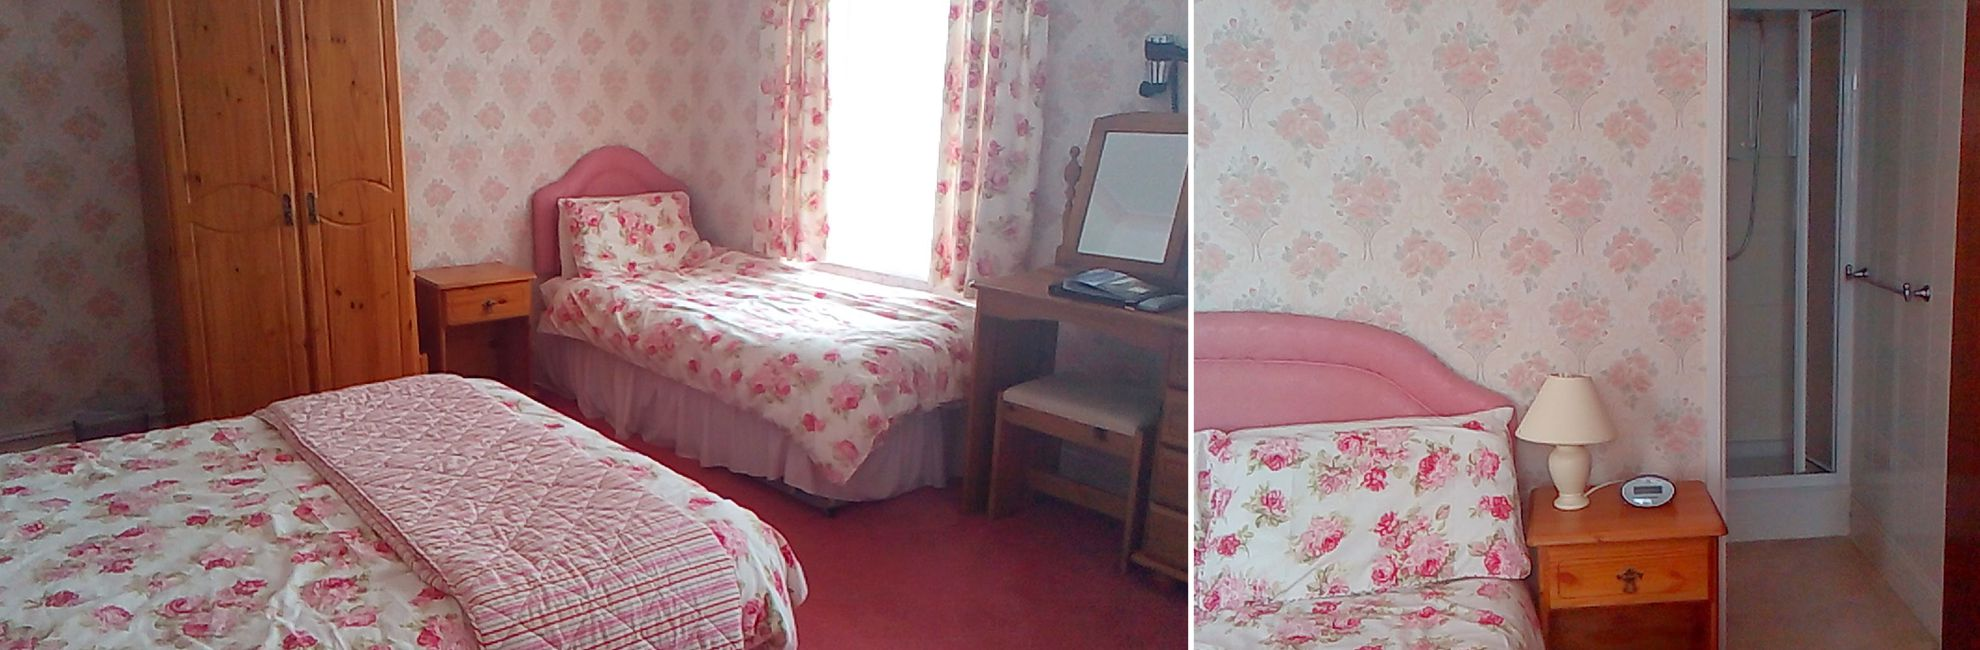 Family of 3 room at Adeline Guest House